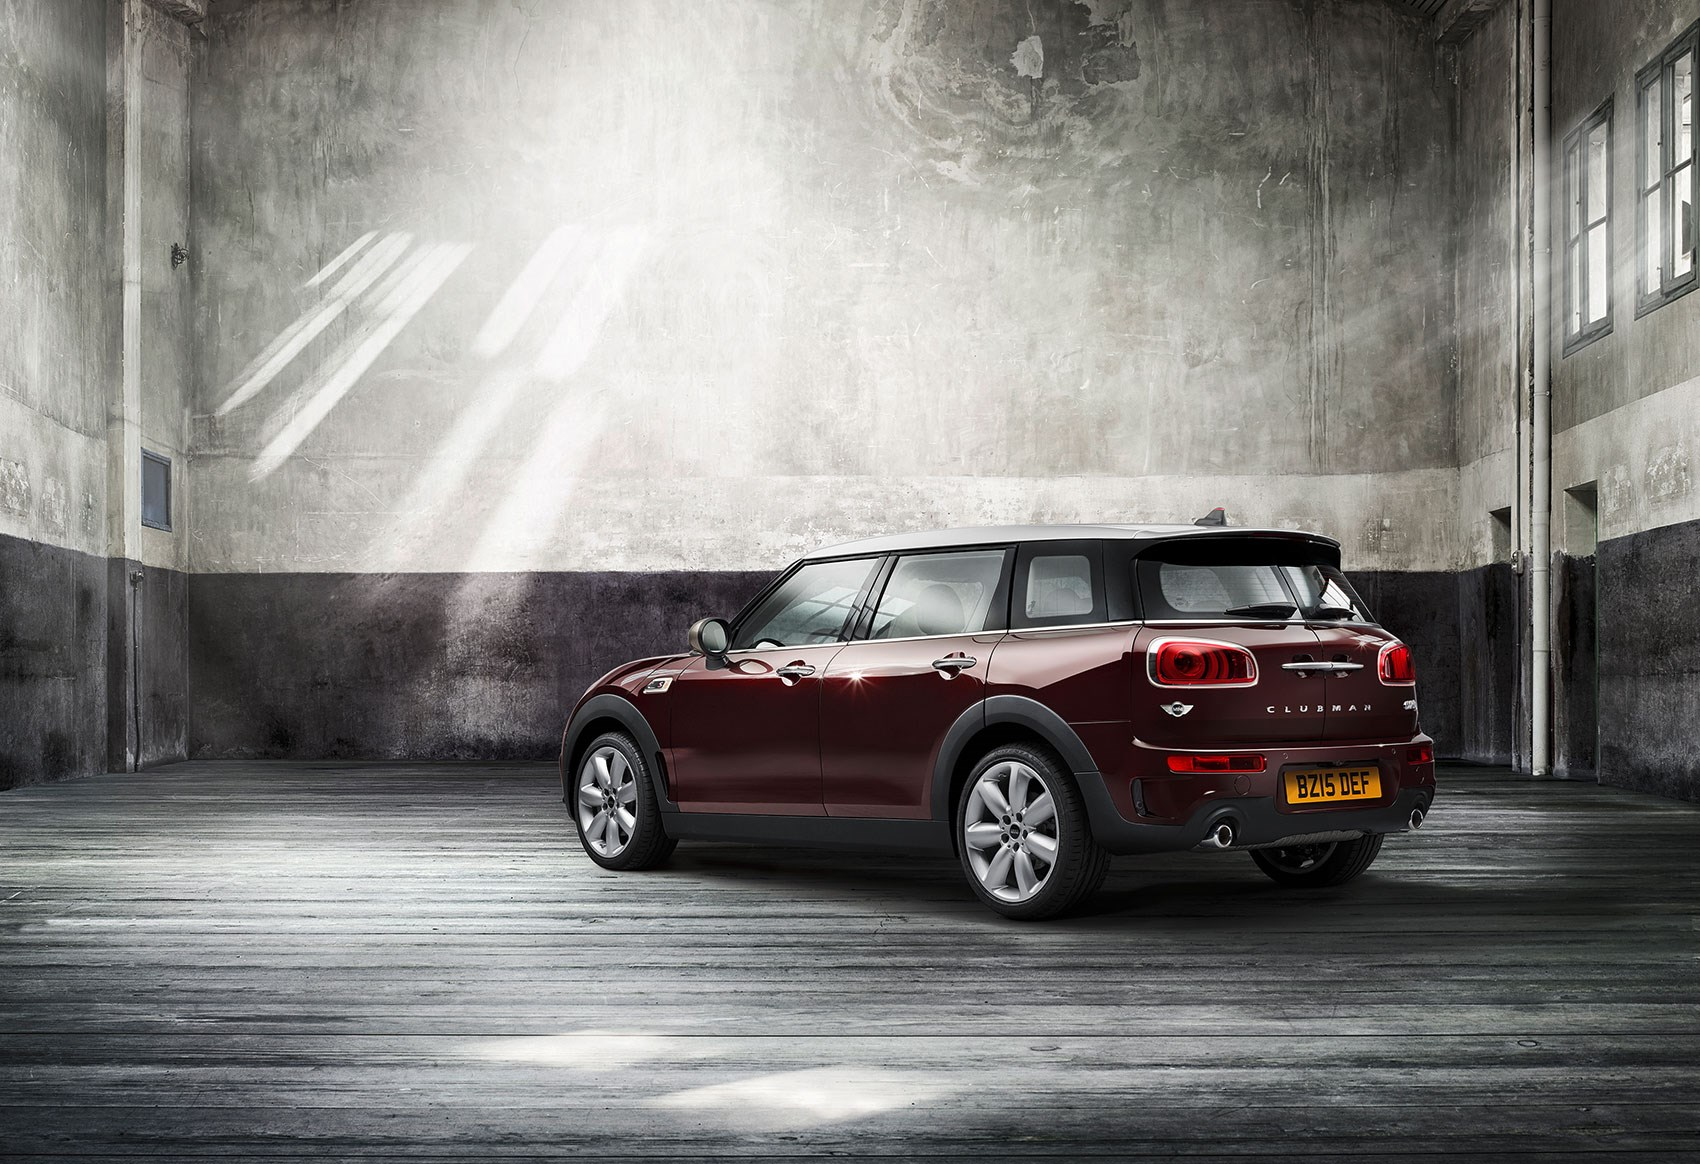 mini clubman 2015 biggest mini yet keeps barn doors. Black Bedroom Furniture Sets. Home Design Ideas